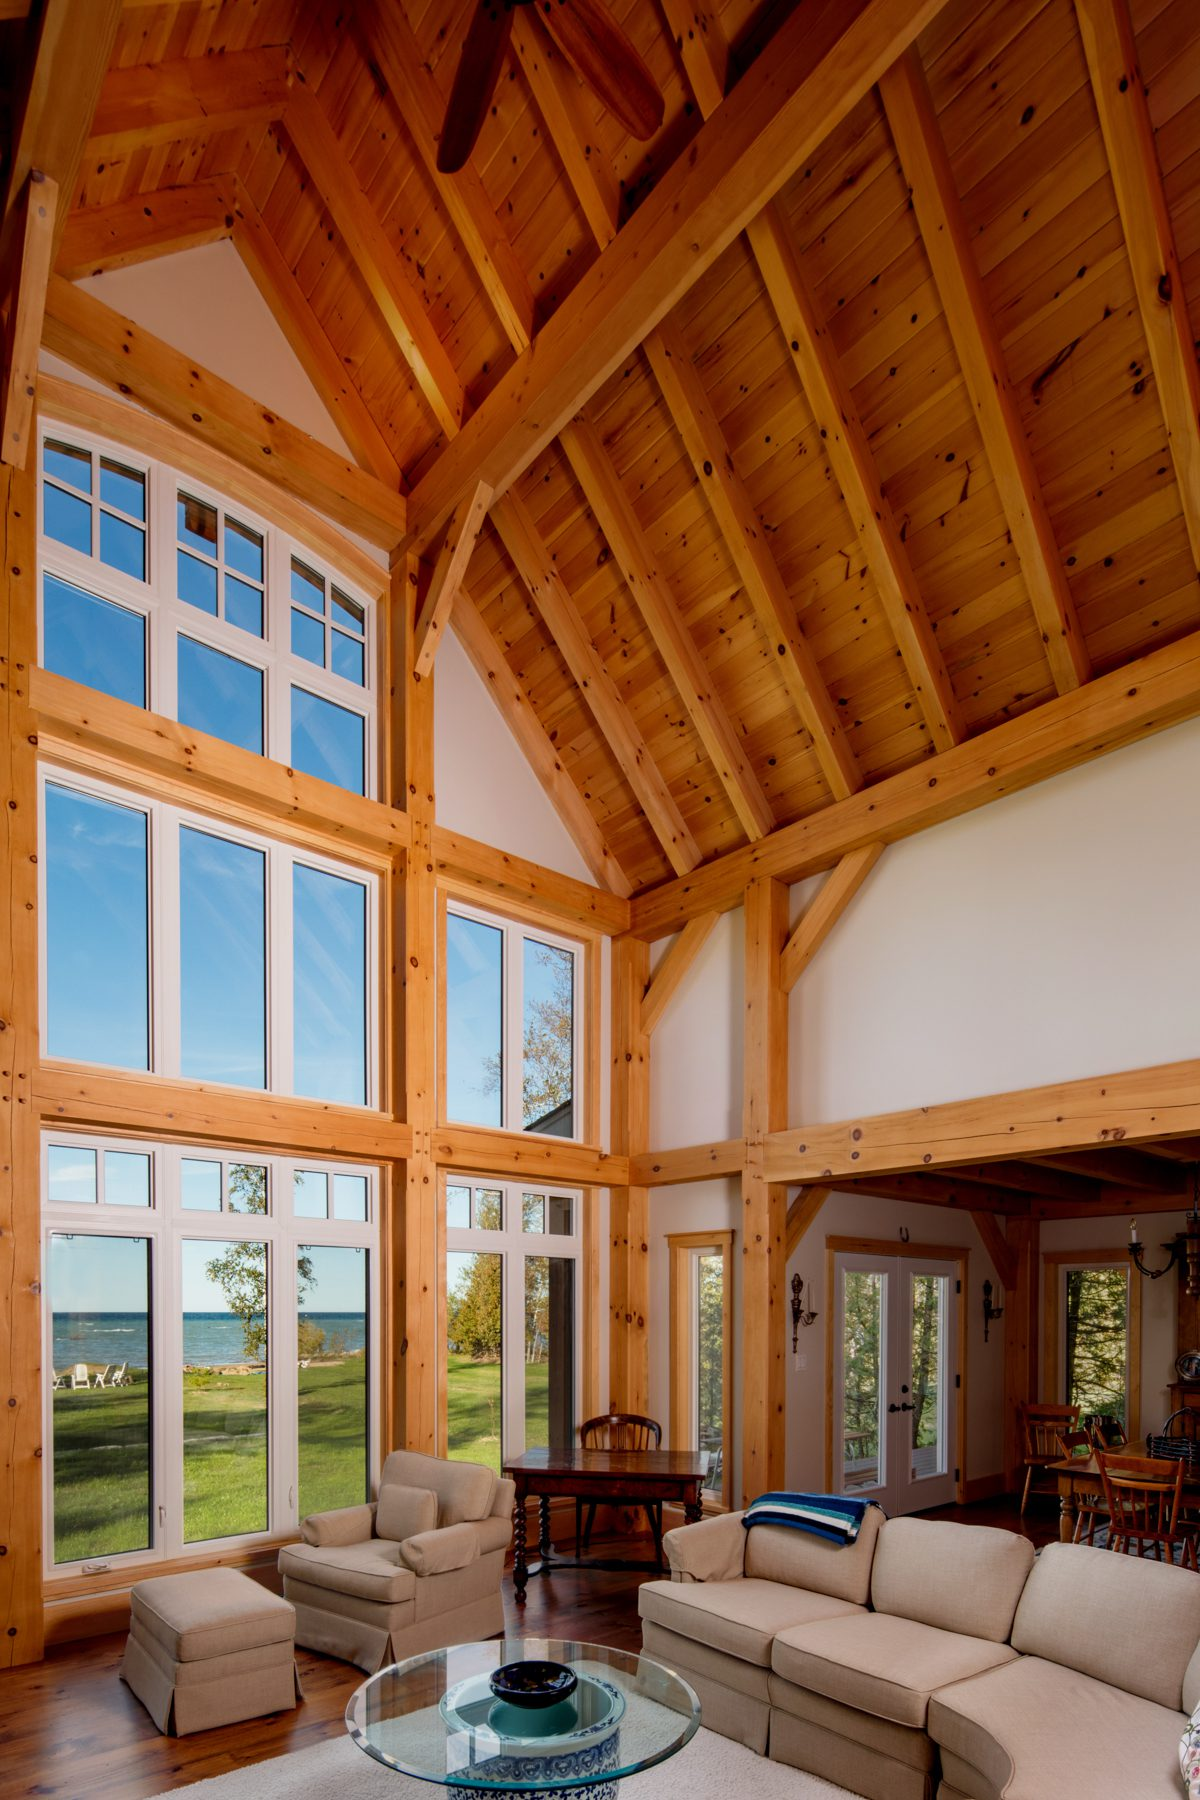 Normerica Timber Frame, Interior, Cottage, Living Room, Great Room, Cathedral Ceiling, View of the Lake